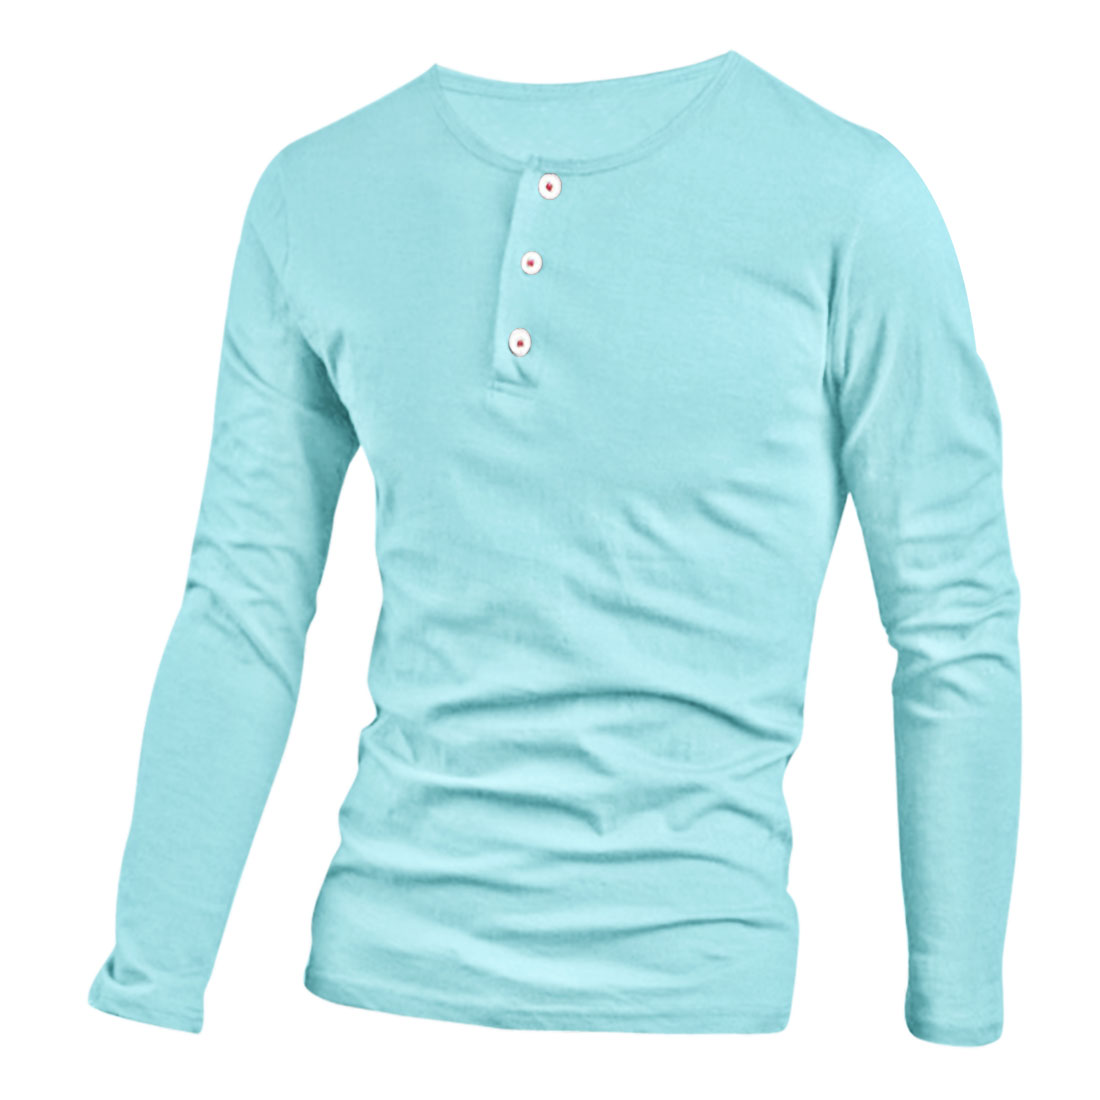 Back to College Gifts and Accessories | Men Cozy Fit Button-Up Pullover Design Henley Shirt Sky Blue M